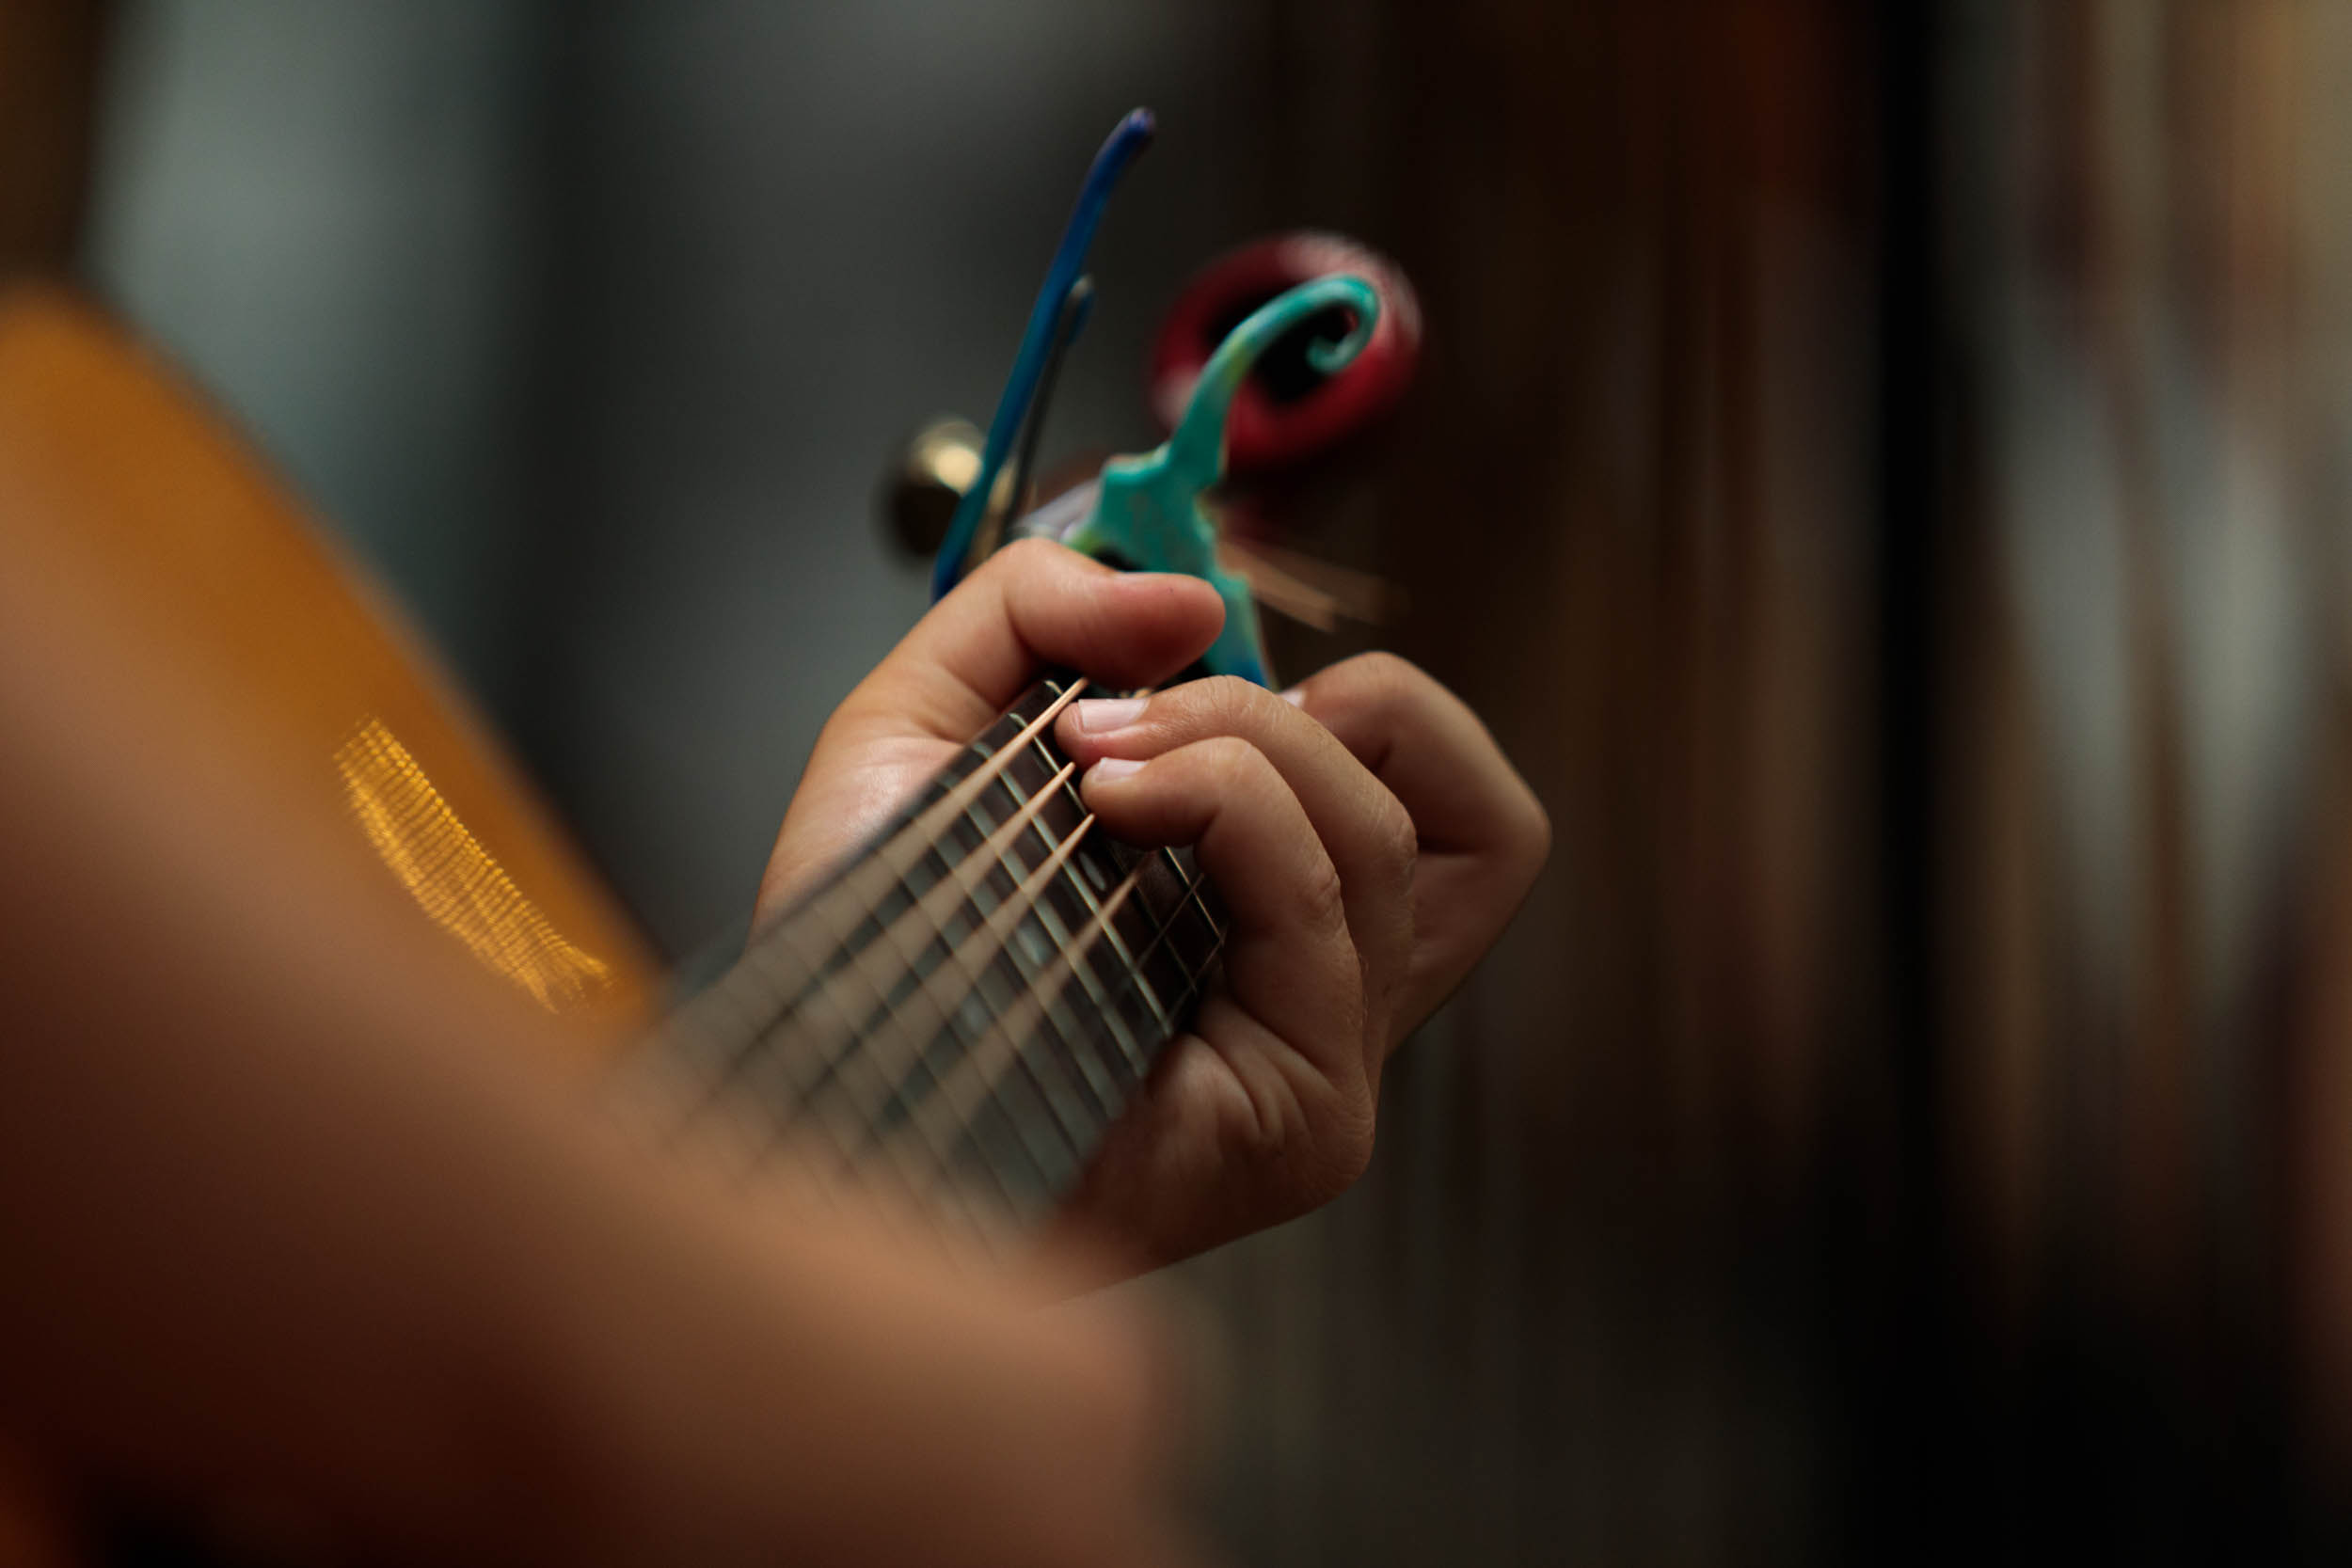 A musician holding a chord on a guitar